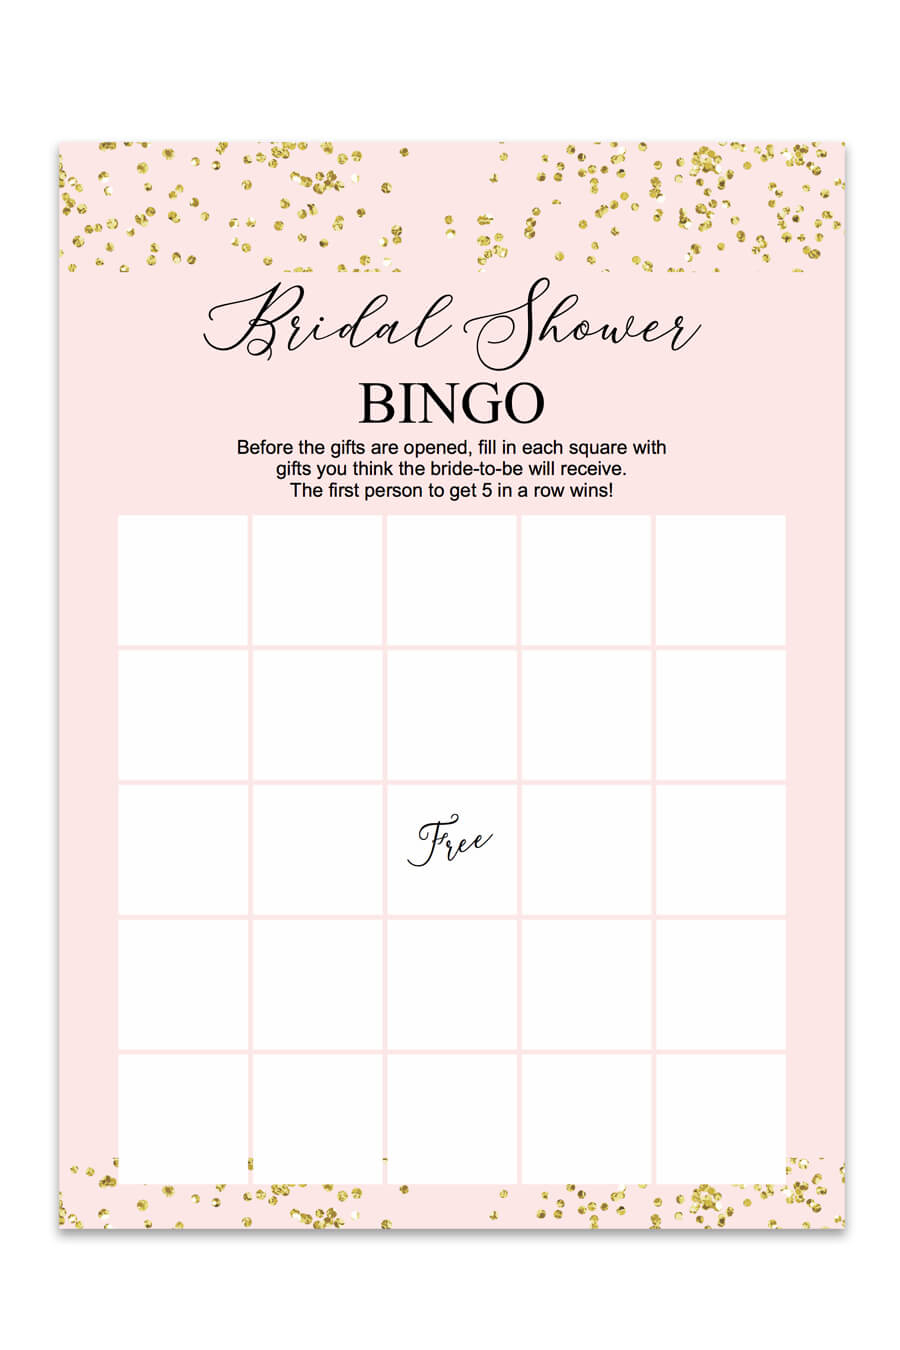 Blush And Confetti Bridal Shower Bingo - Chicfetti - Free Printable Bridal Shower Bingo